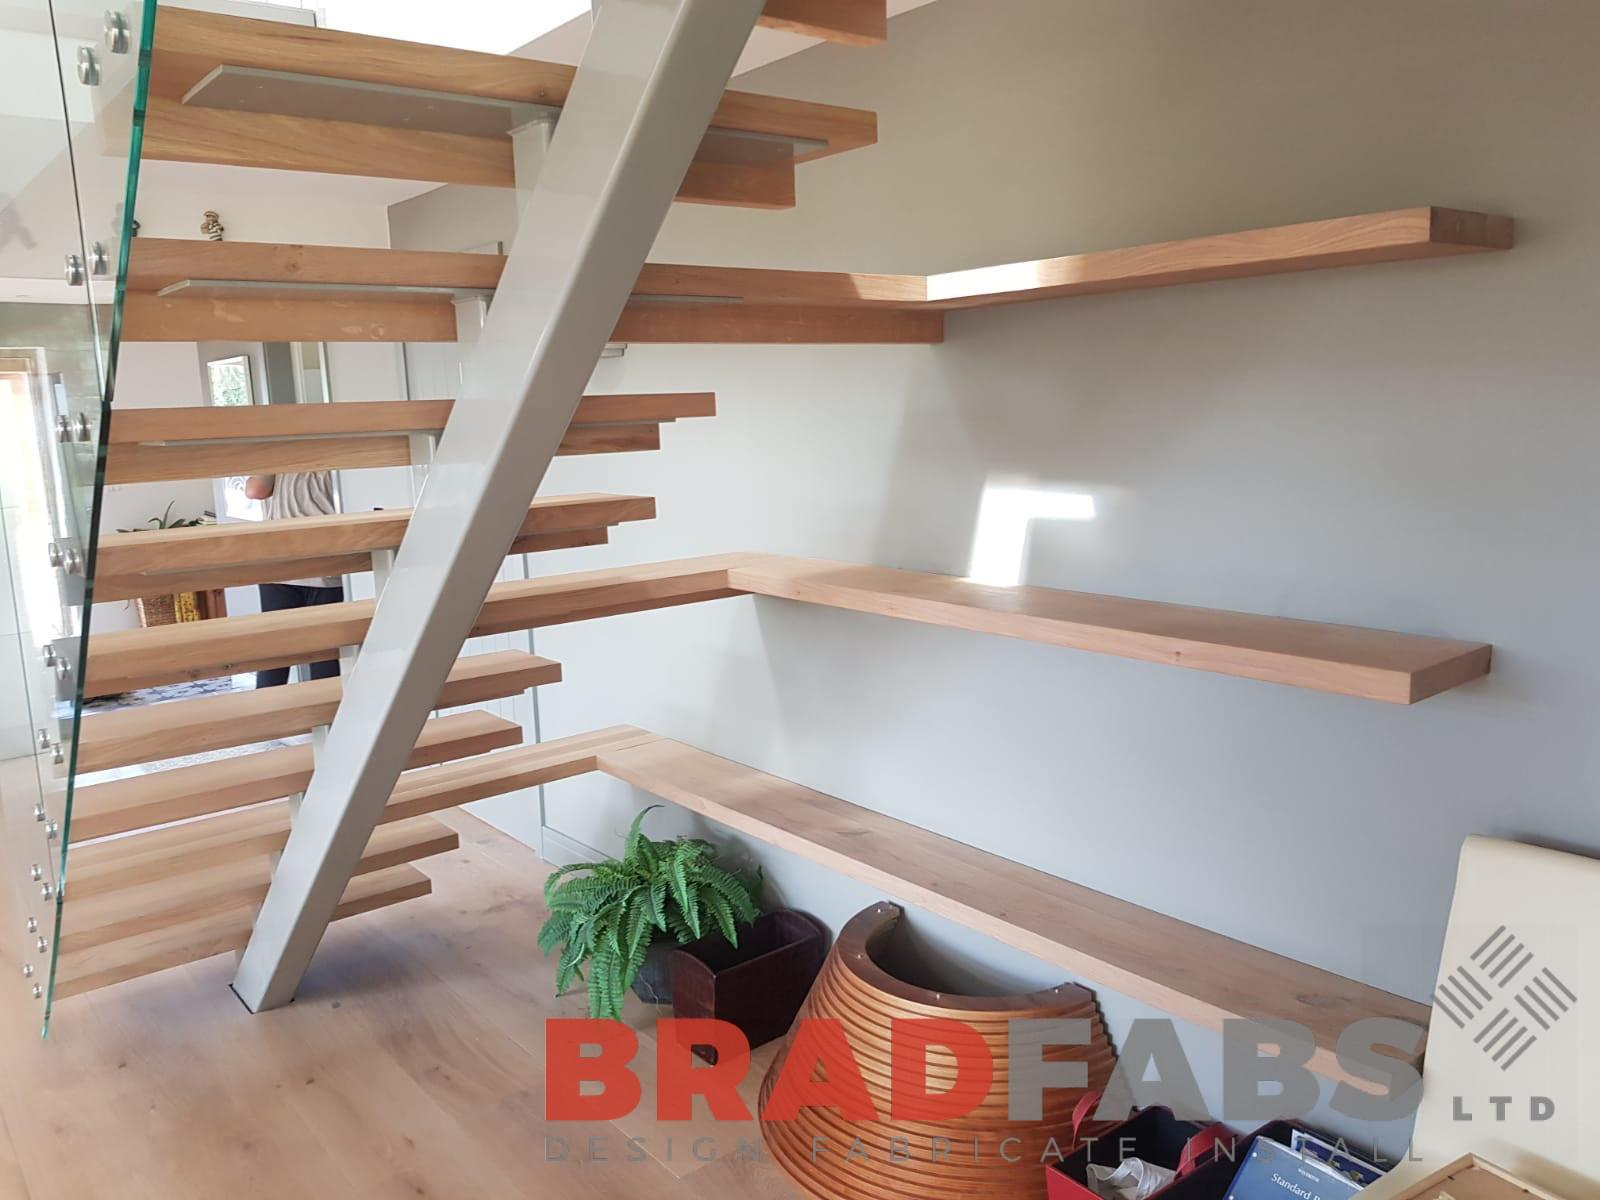 Floating Staircases: Building Practical Solutions Beautifully